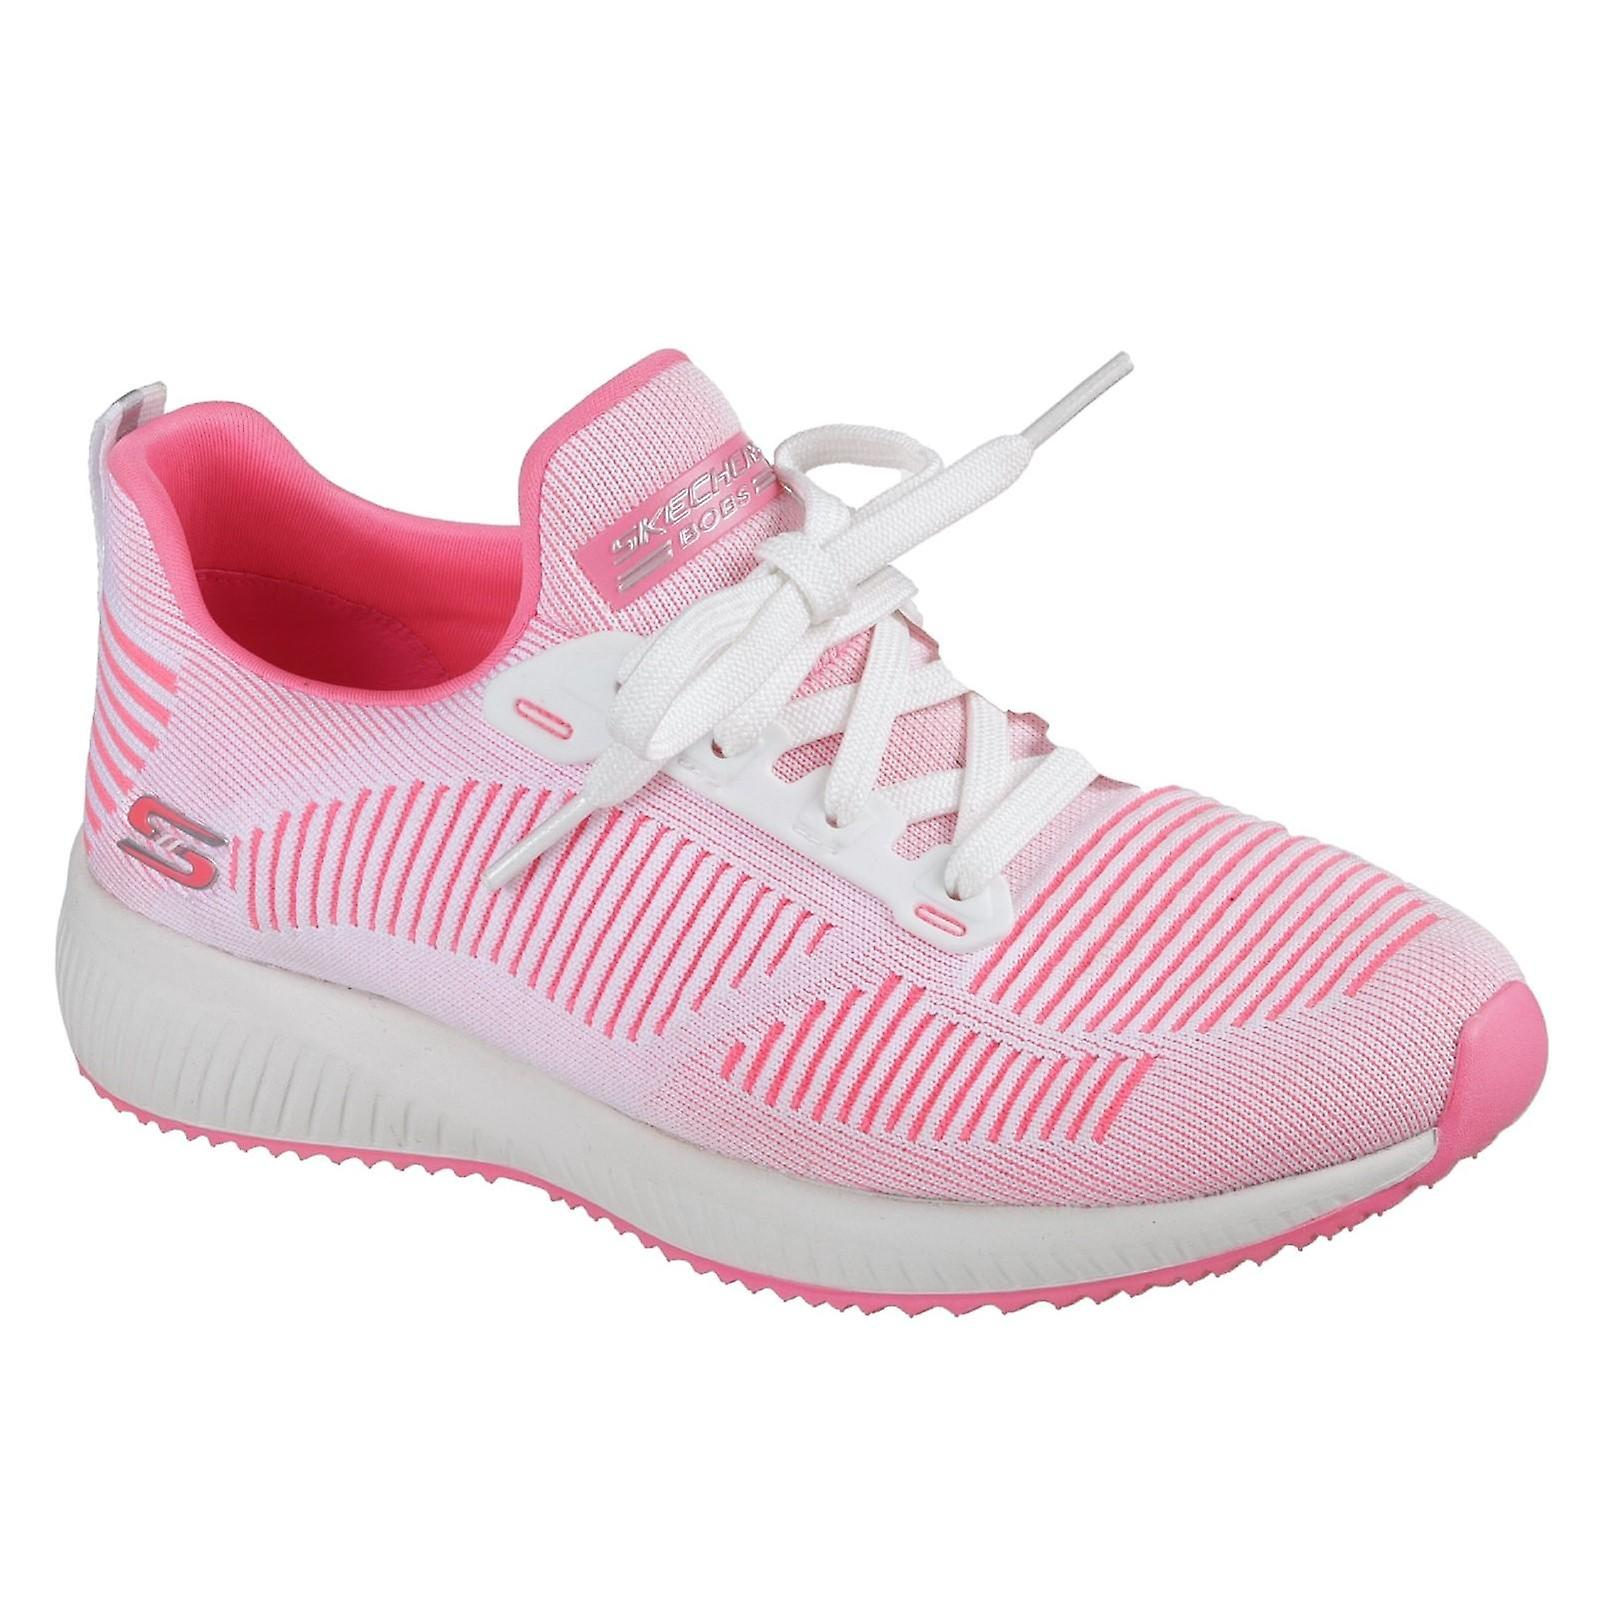 Https Skechers Para Ninos Chicos Flexion Ventaja 20 Little Fresco Pink Bowie Shoes 52900745 Max